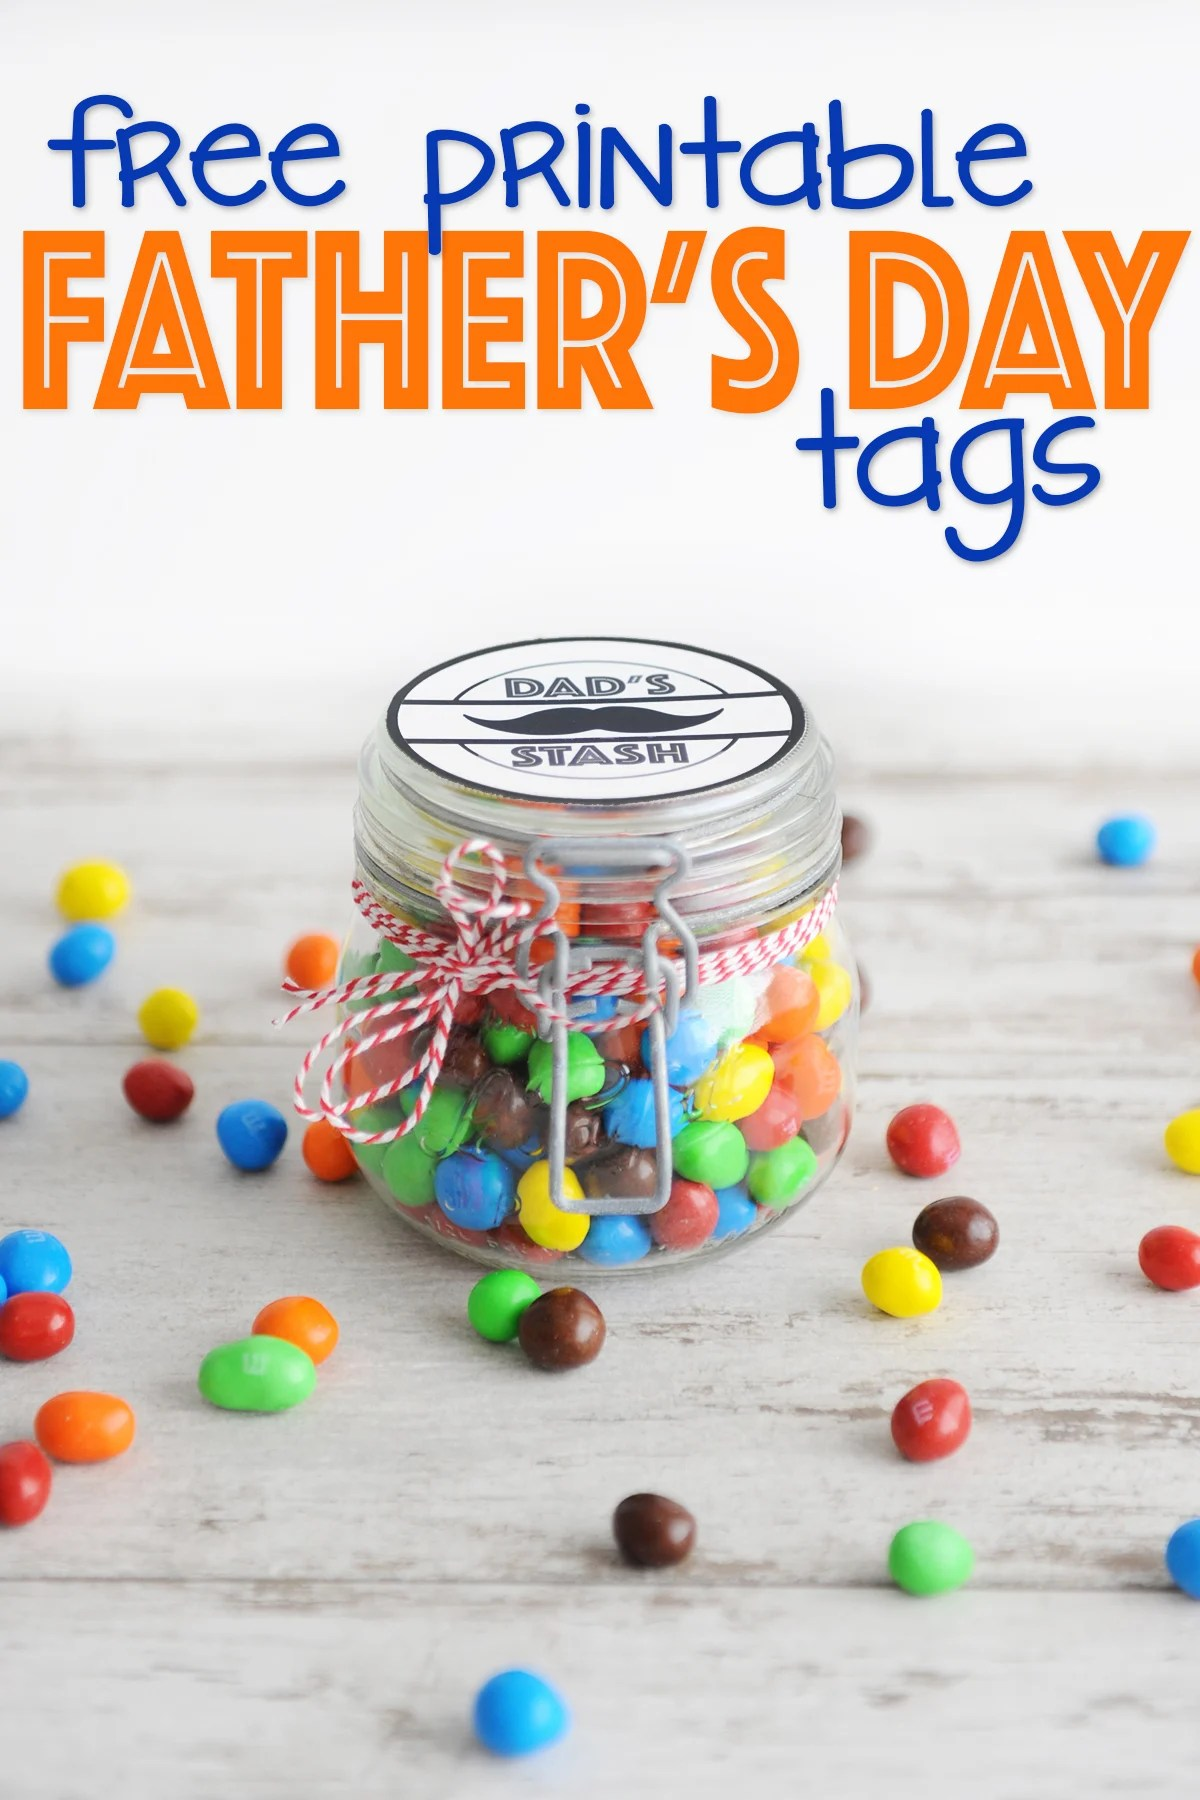 Free Father's Day Printable Tags : Dad's Stash